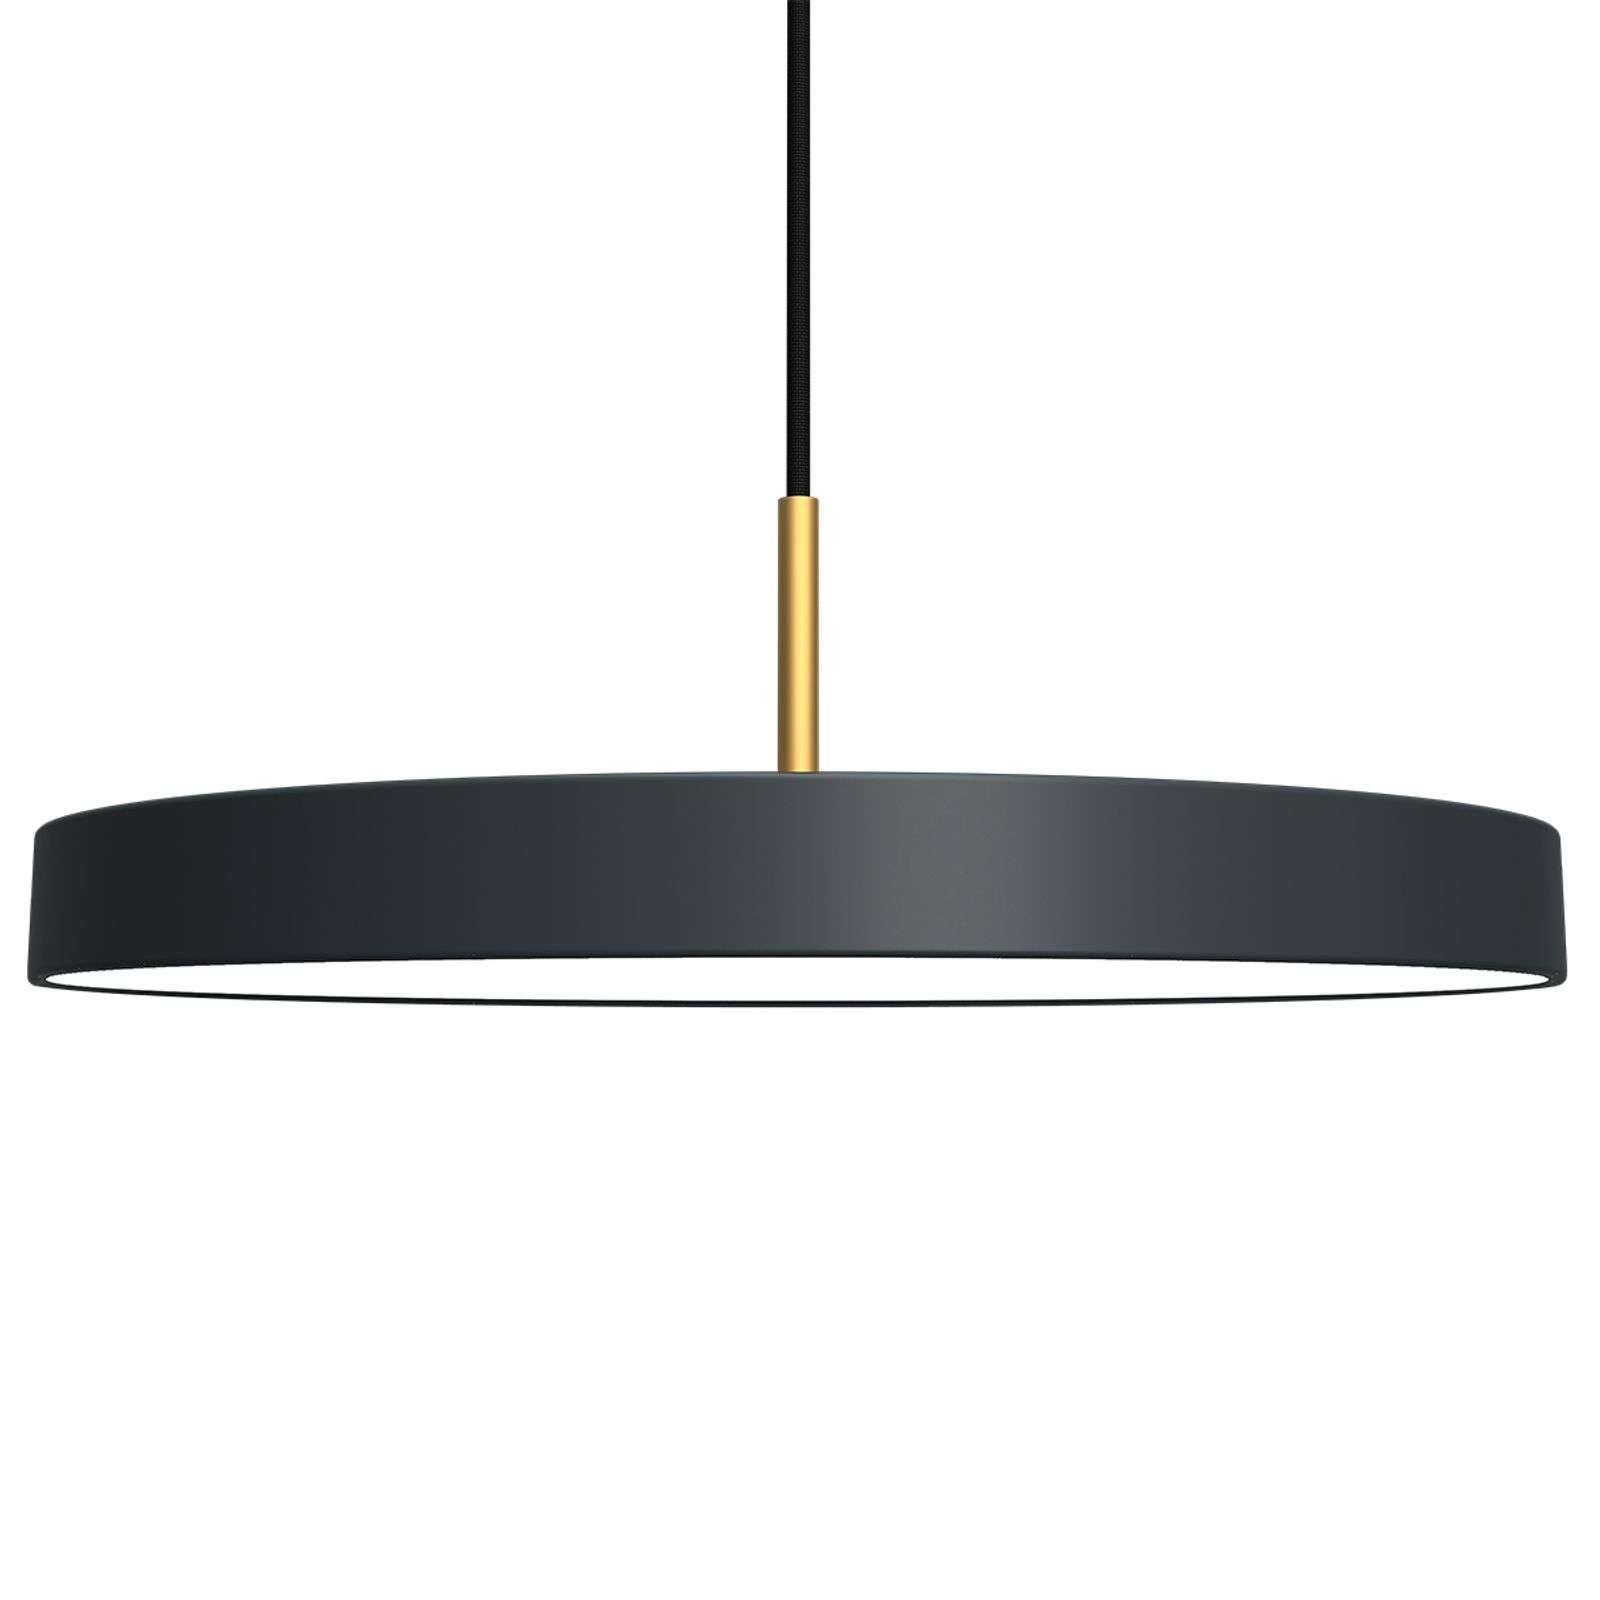 Suspension LED futuriste Asteria anthracite